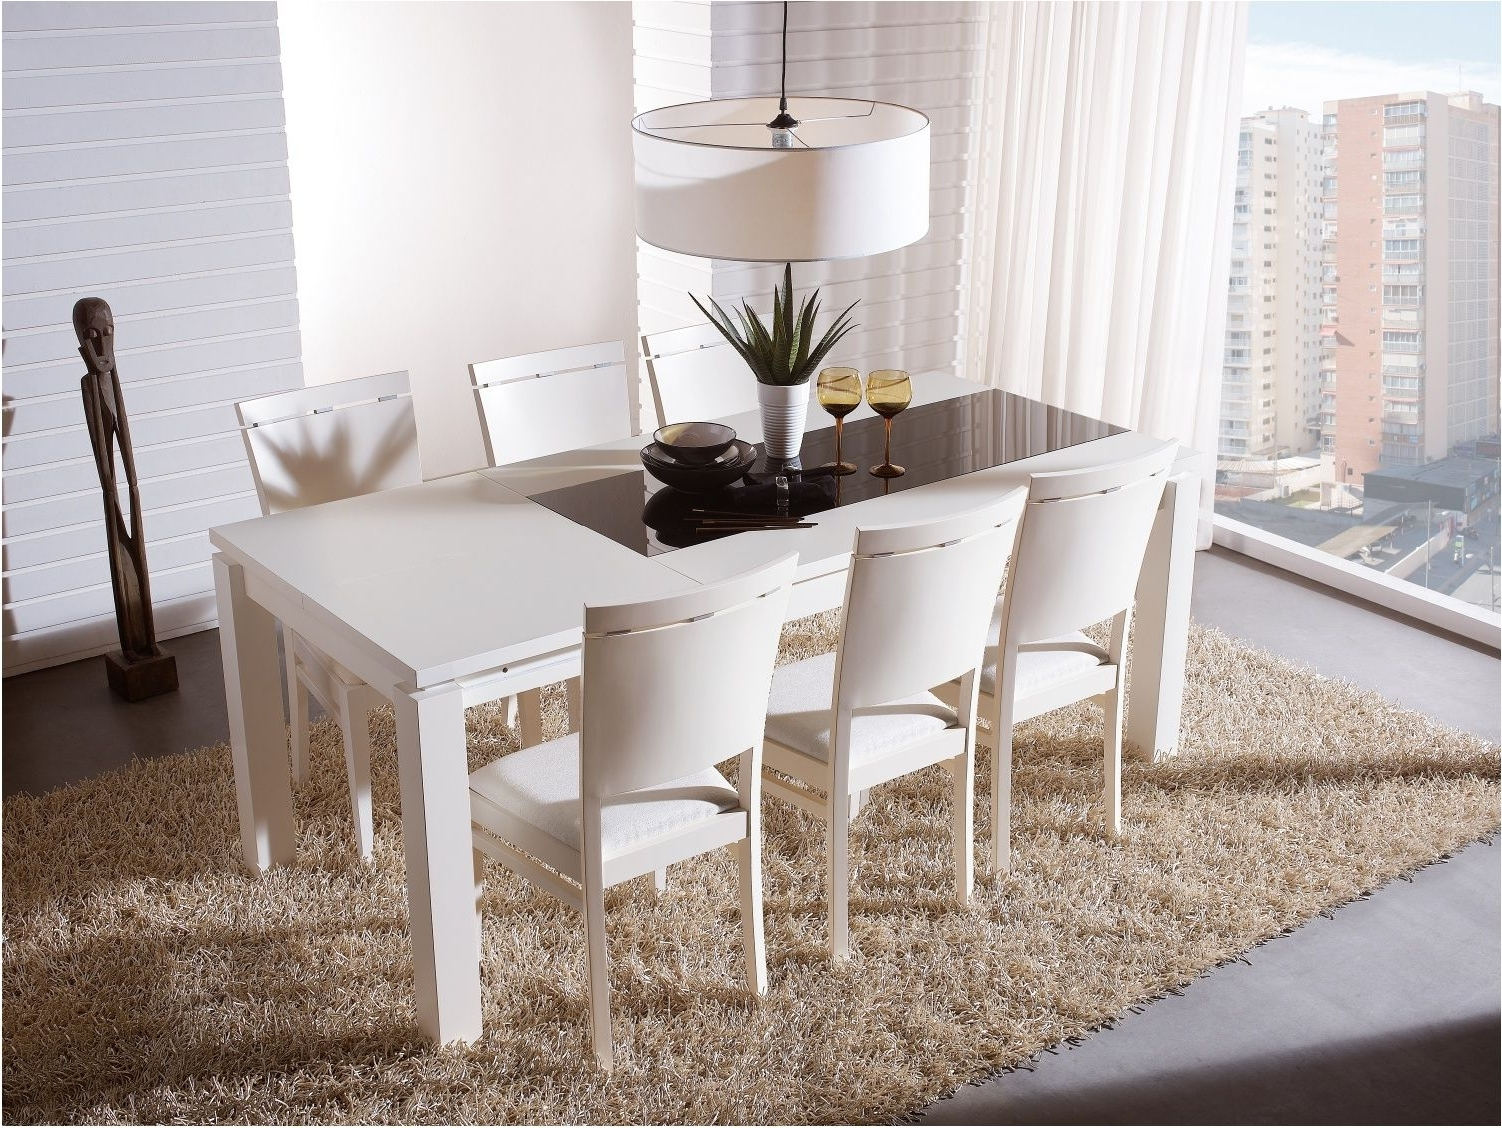 Awesome New White Extending Dining Table And Chairs Impressive With Best And Newest White Extending Dining Tables And Chairs (View 2 of 25)